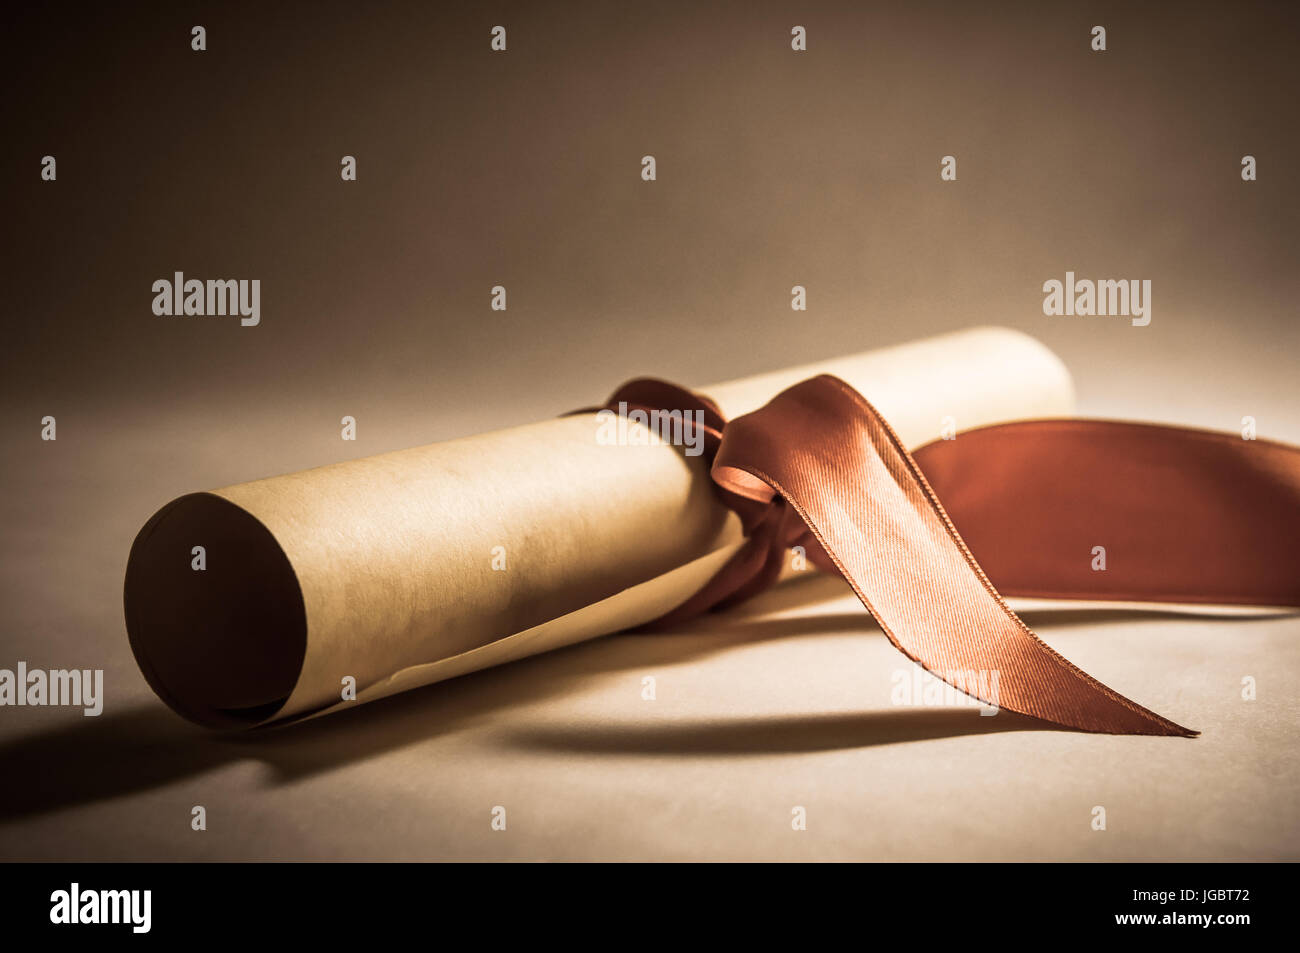 A parchment diploma scroll, rolled up with red ribbon laid at an oblique angle.  Processed to give a vintage or - Stock Image